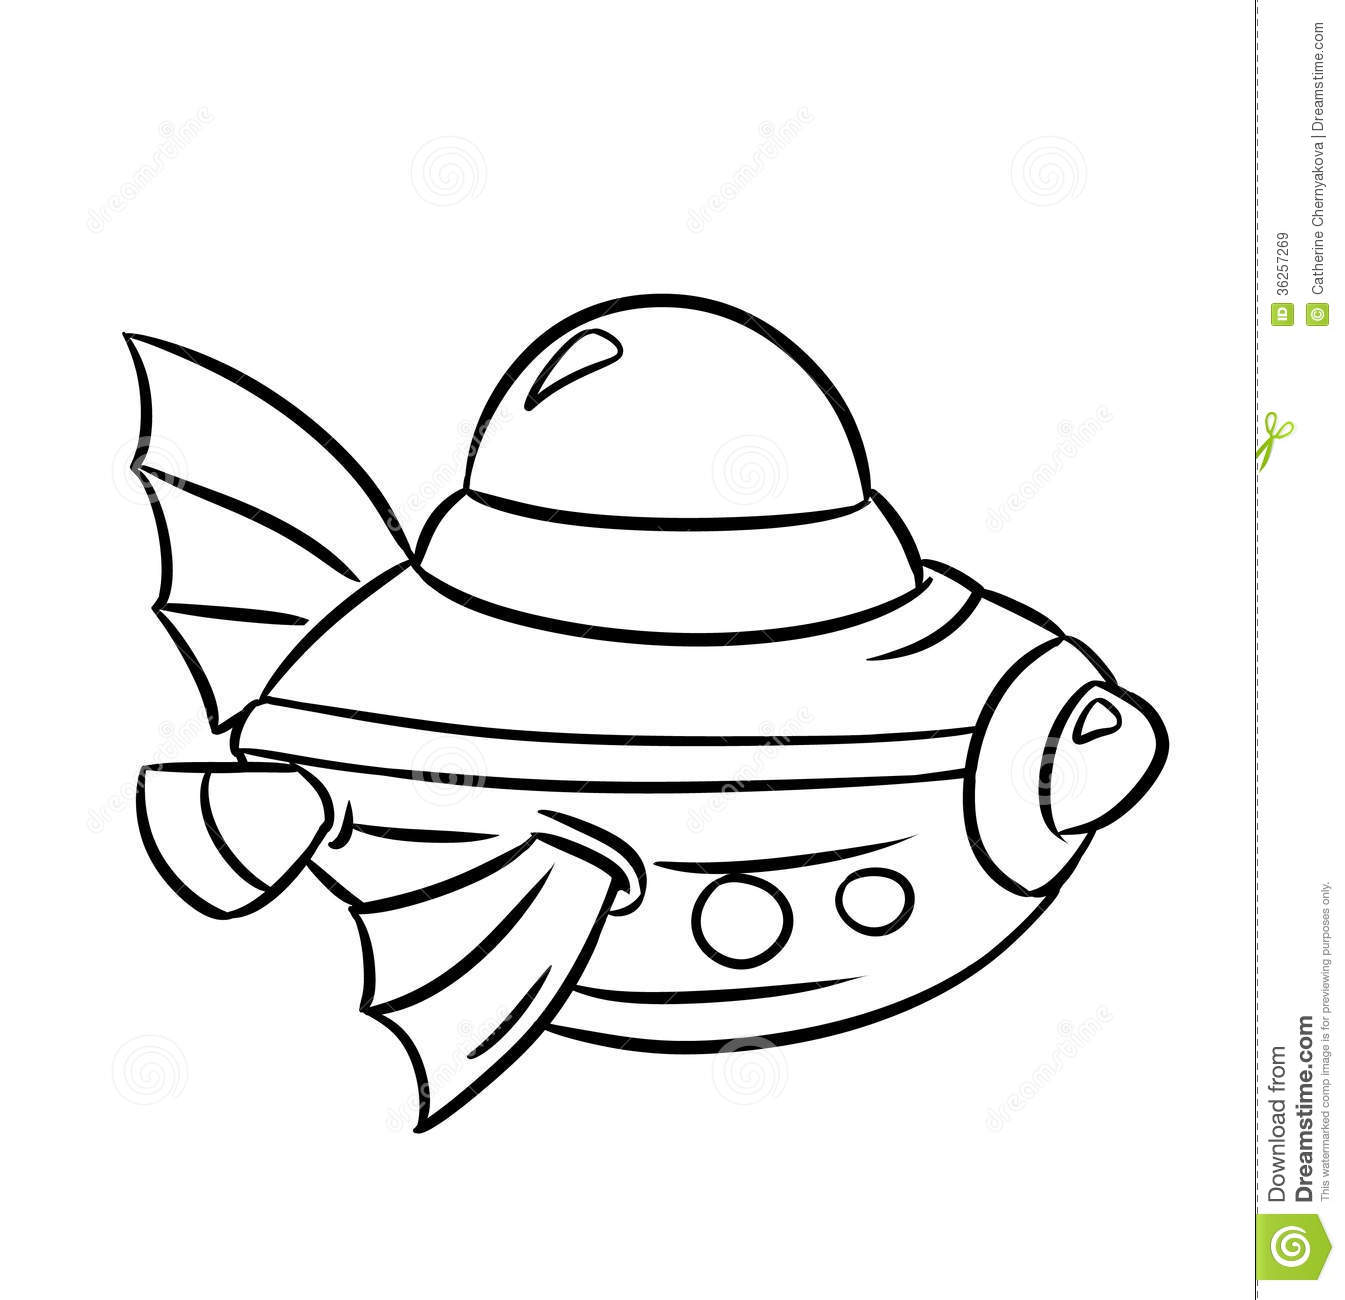 bathyscaphe coloring pages royalty free stock images image 36257269